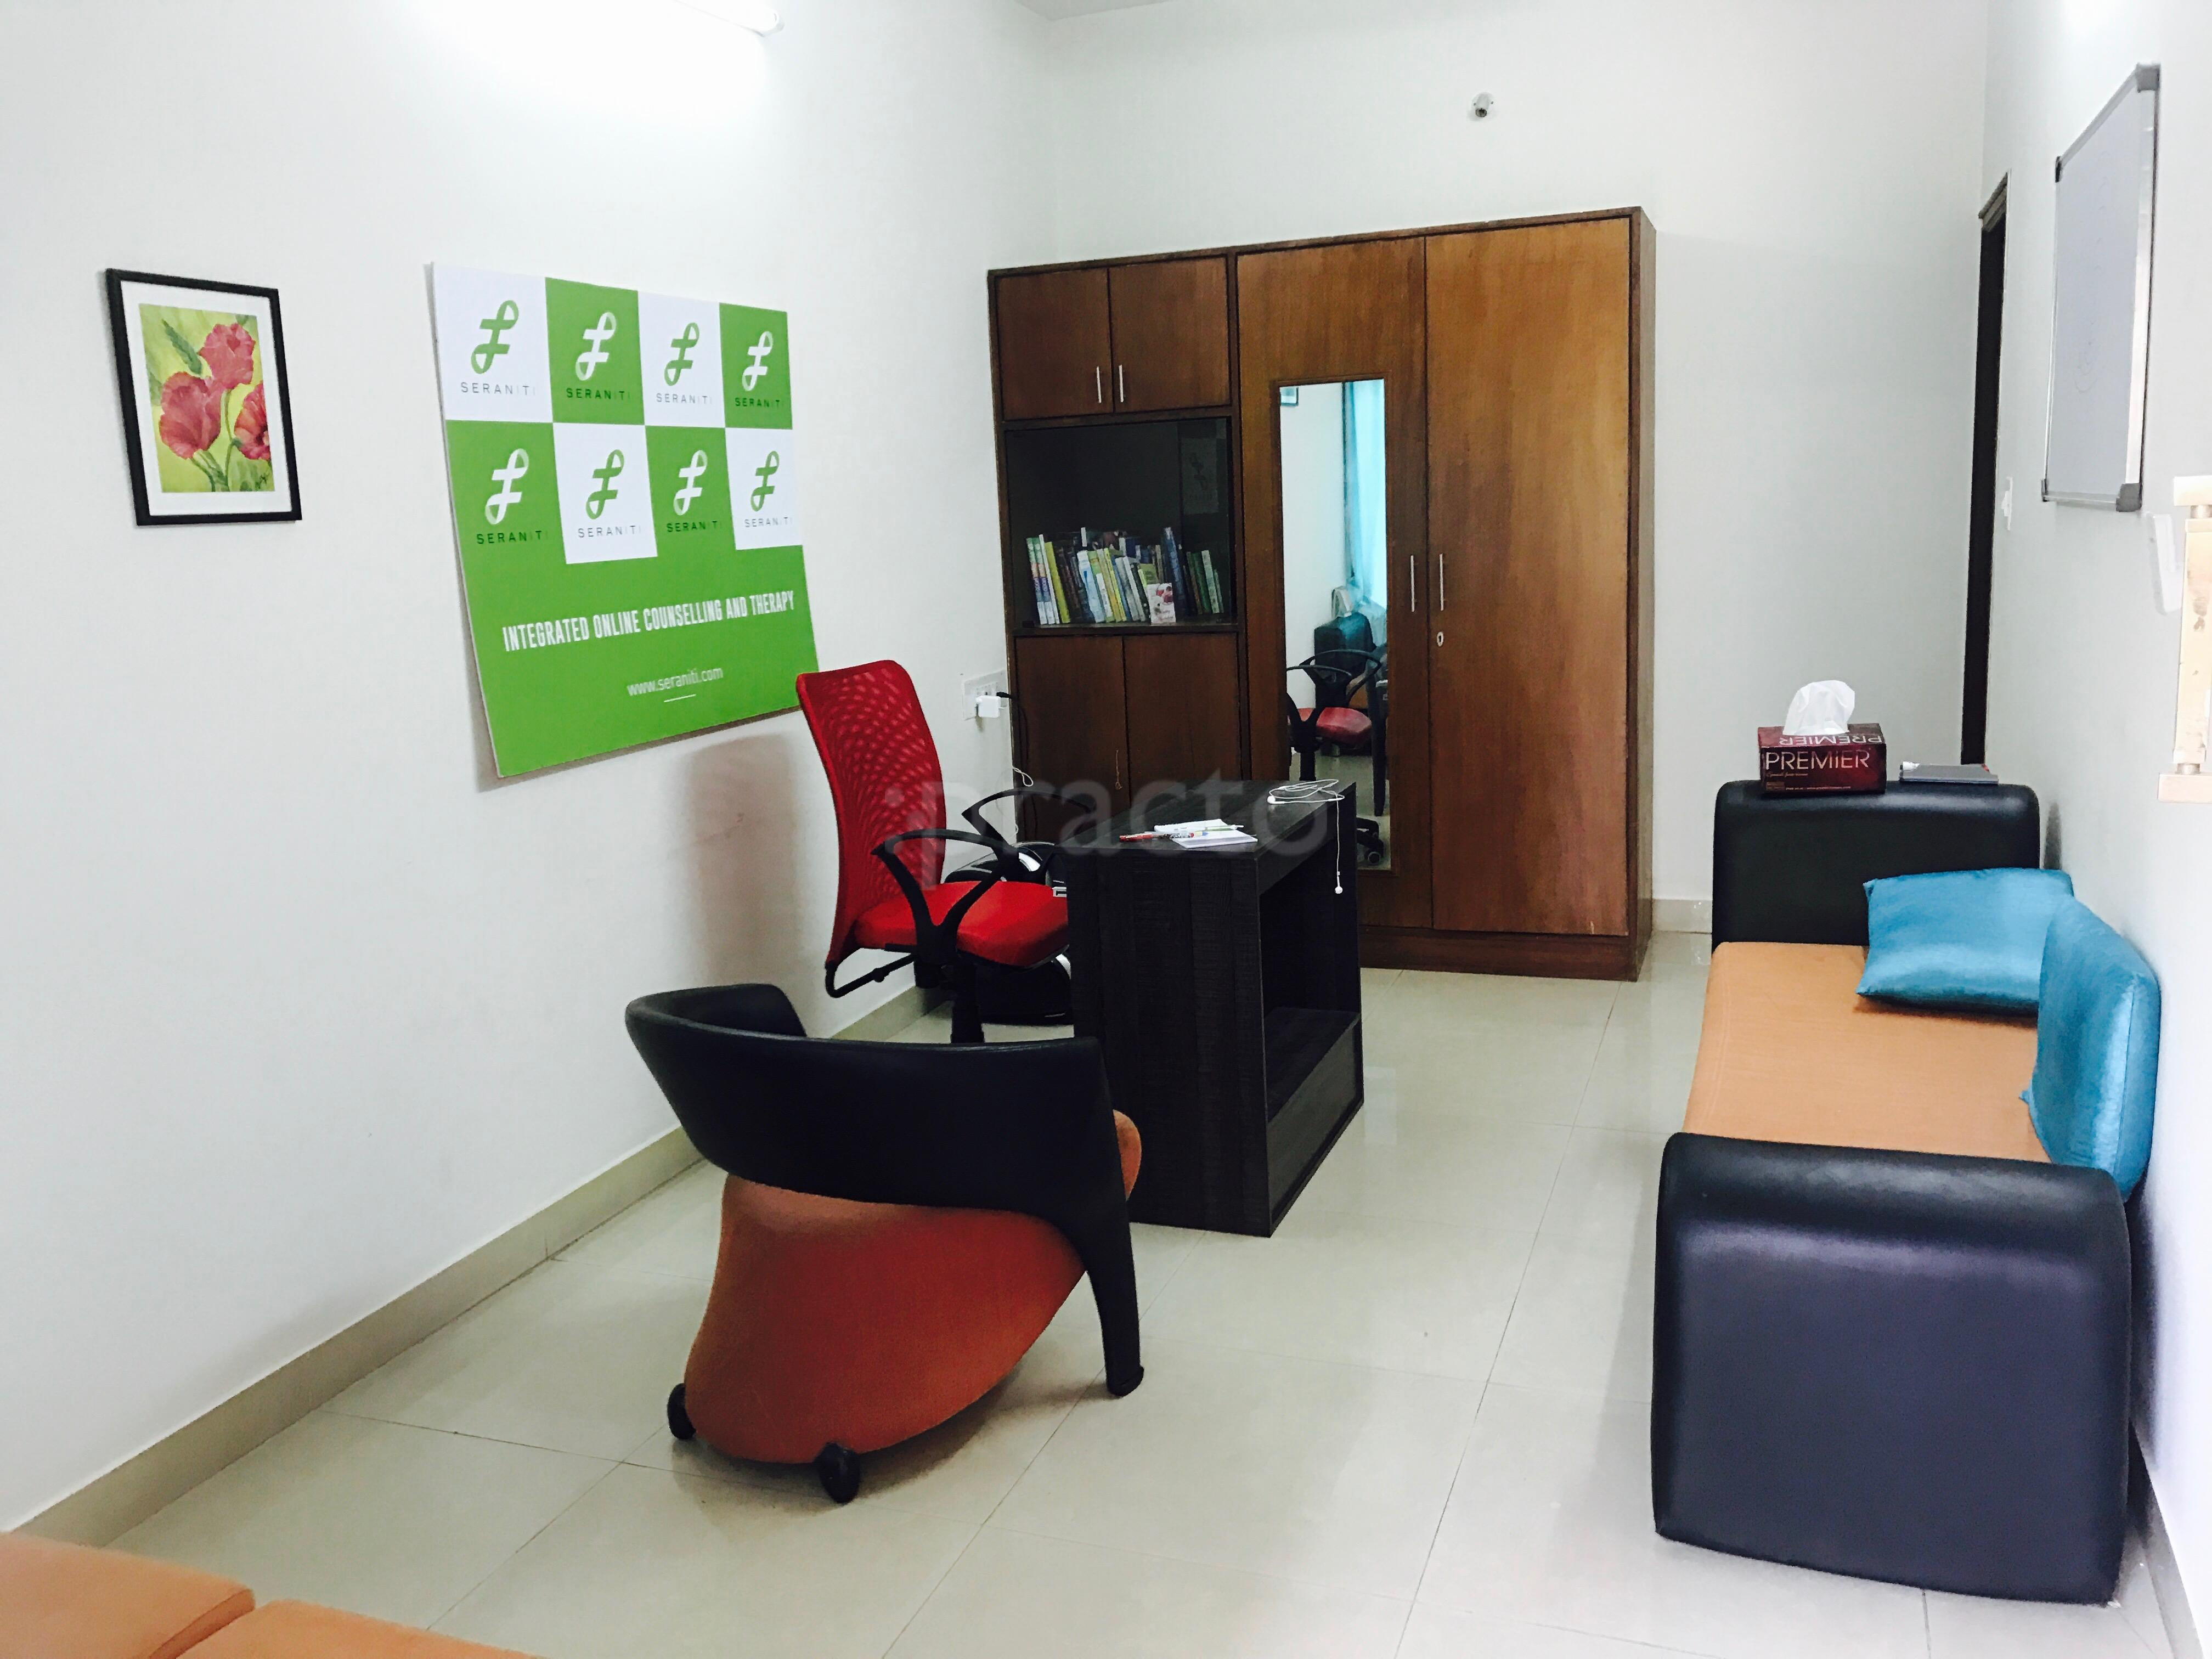 Psychiatrists in Bangalore Instant Appointment Booking View